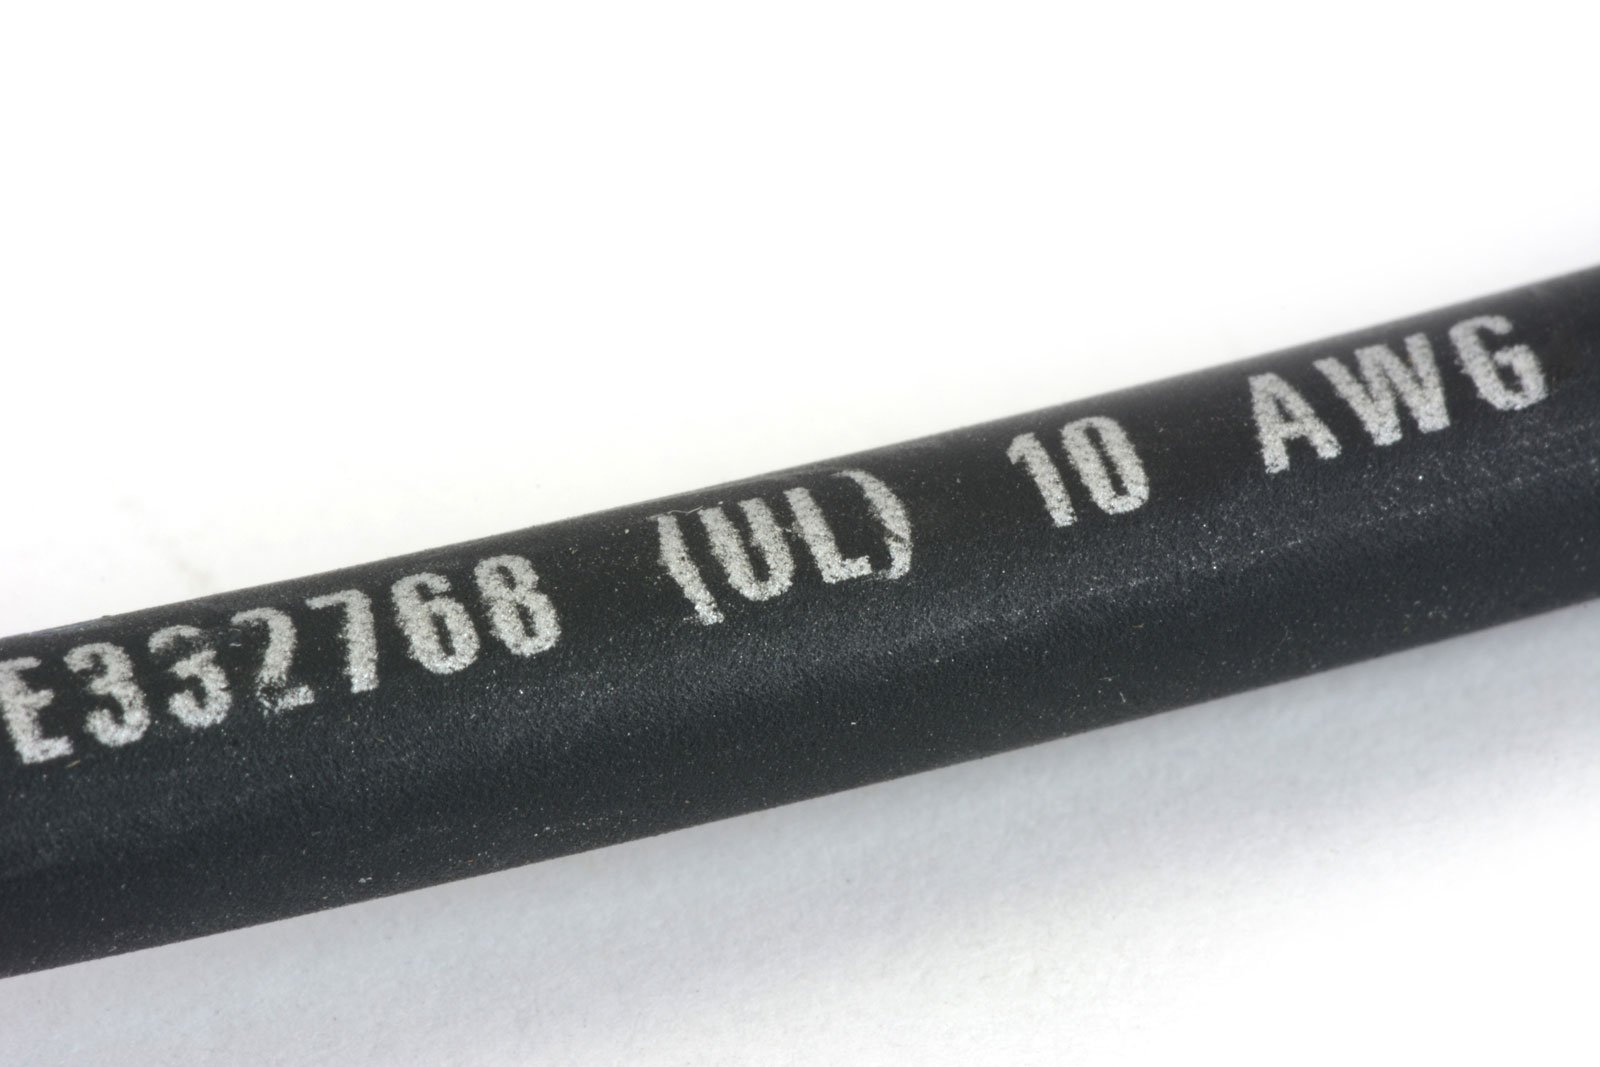 Temco 10 AWG Solar Panel Wire 100' Power Cable Black UL 4703 Copper Made in USA PV Gauge by Temco (Image #3)